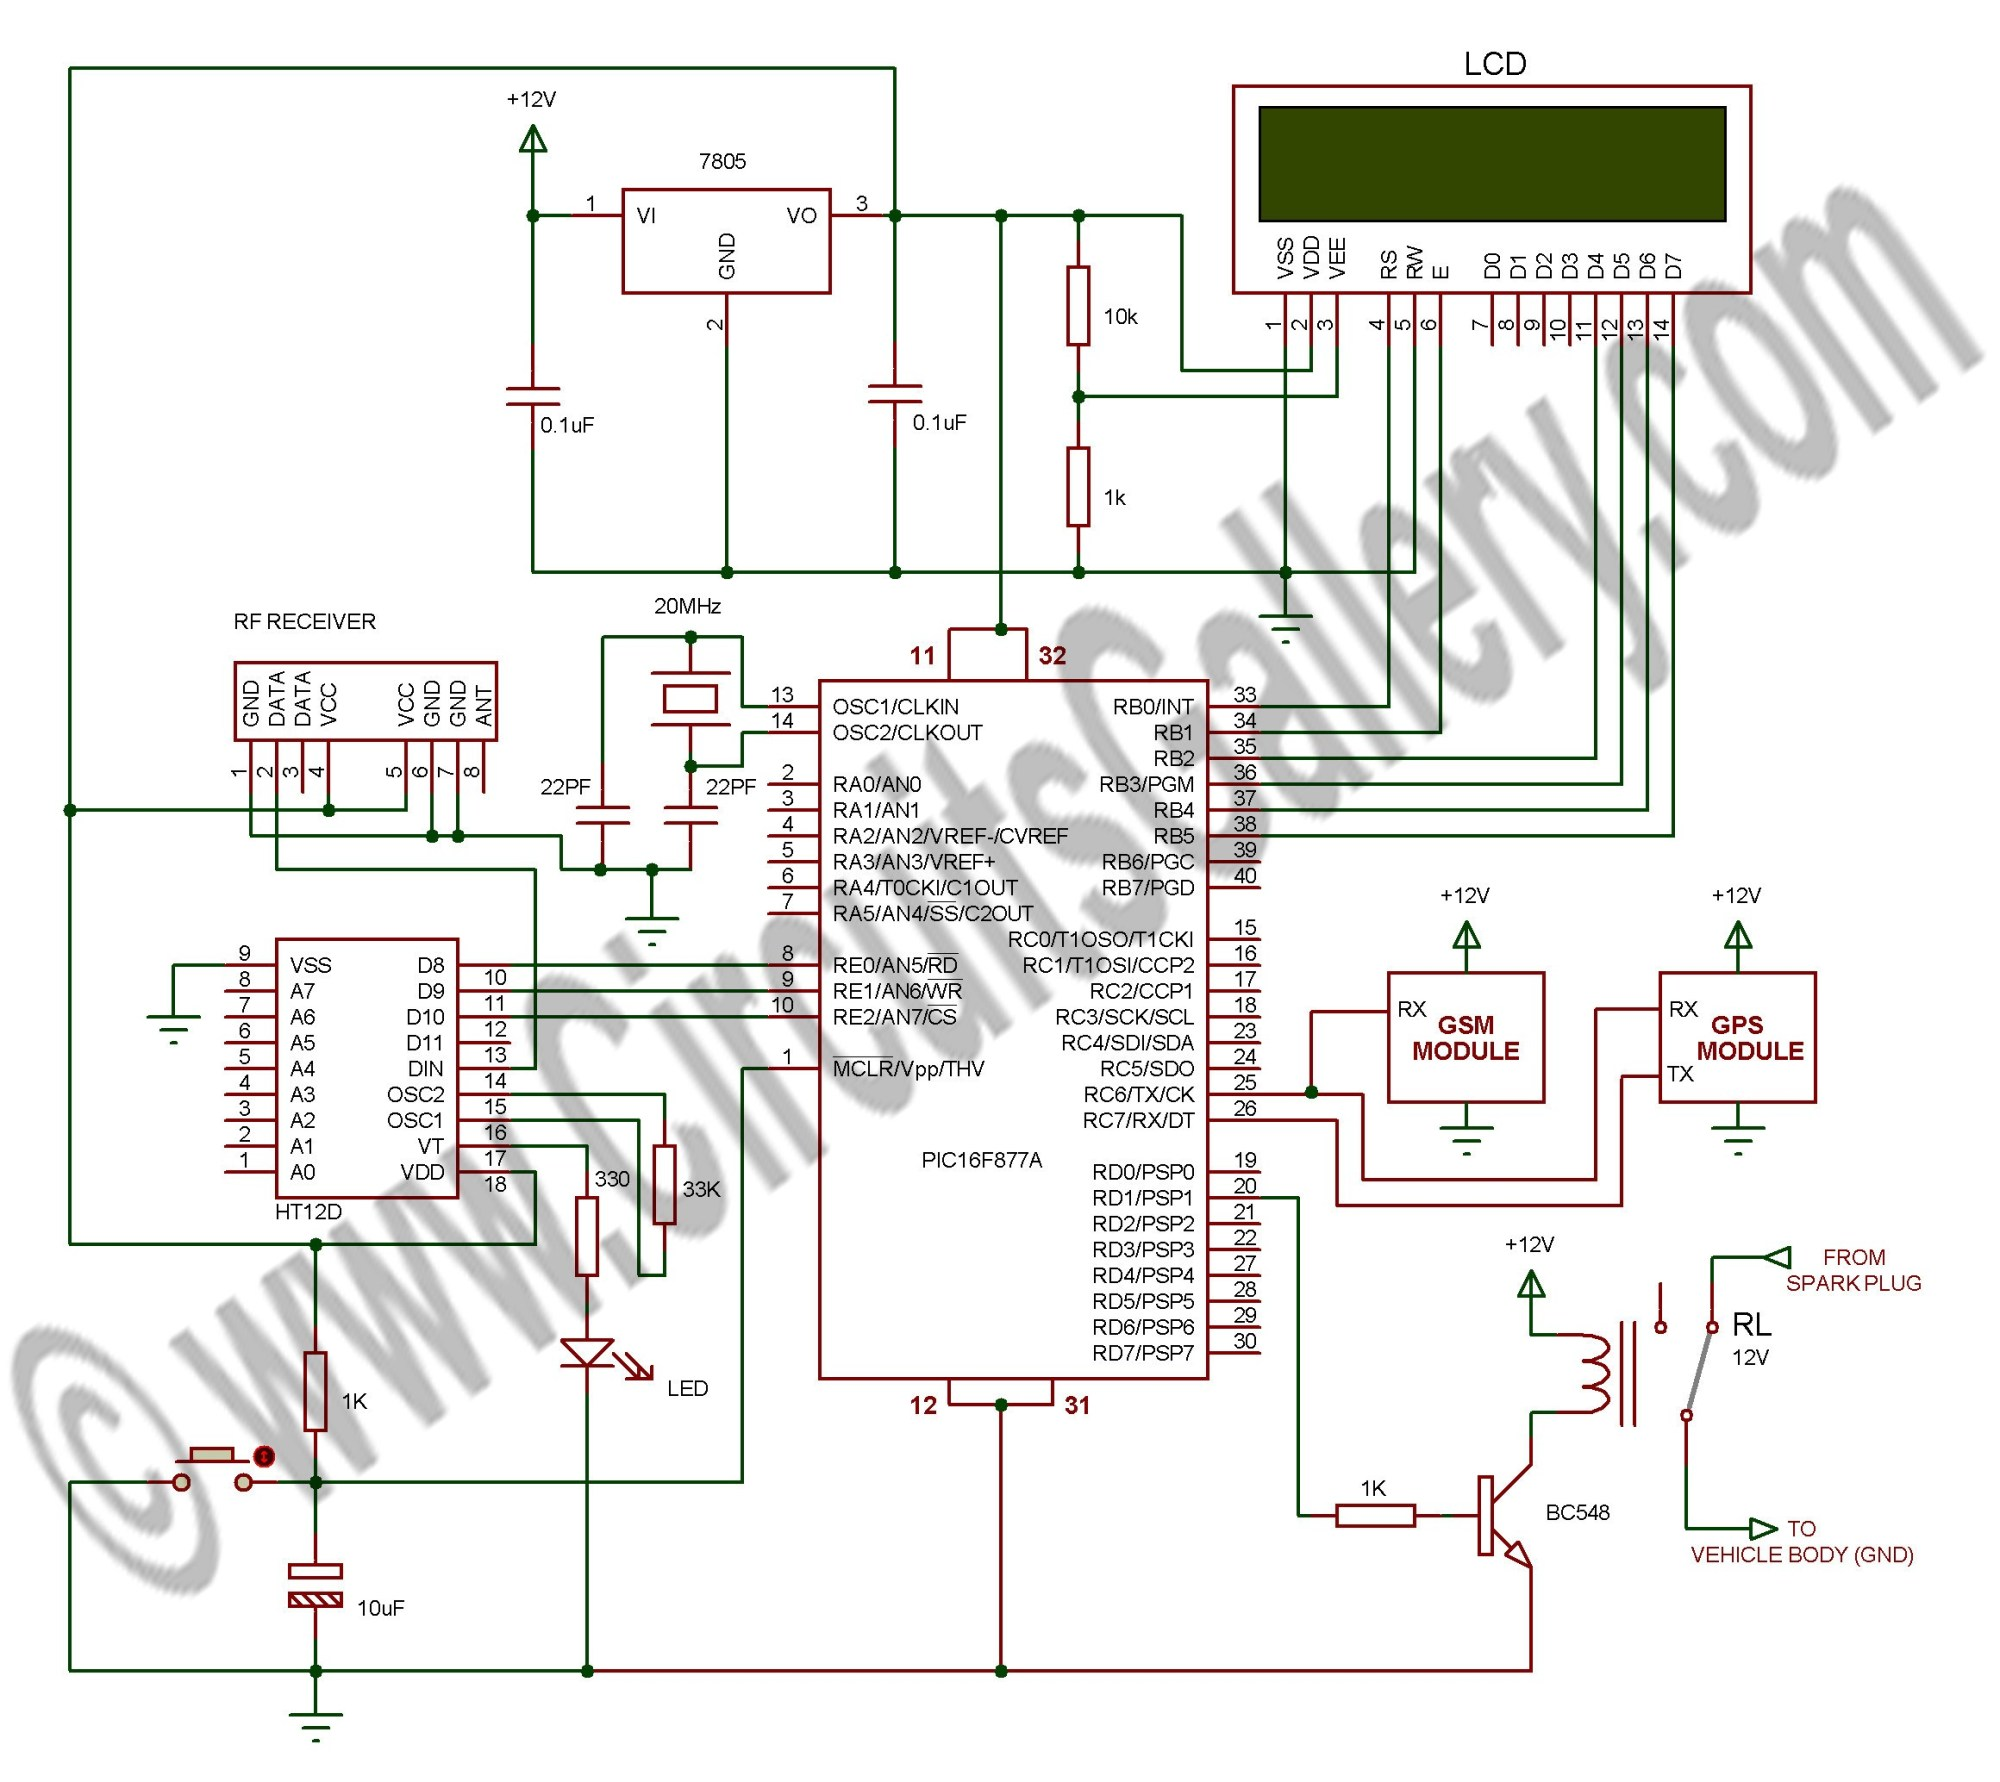 hight resolution of 400 watt metal halide wiring diagram schematic library of wiring universal ballast wiring diagrams 240v ballast